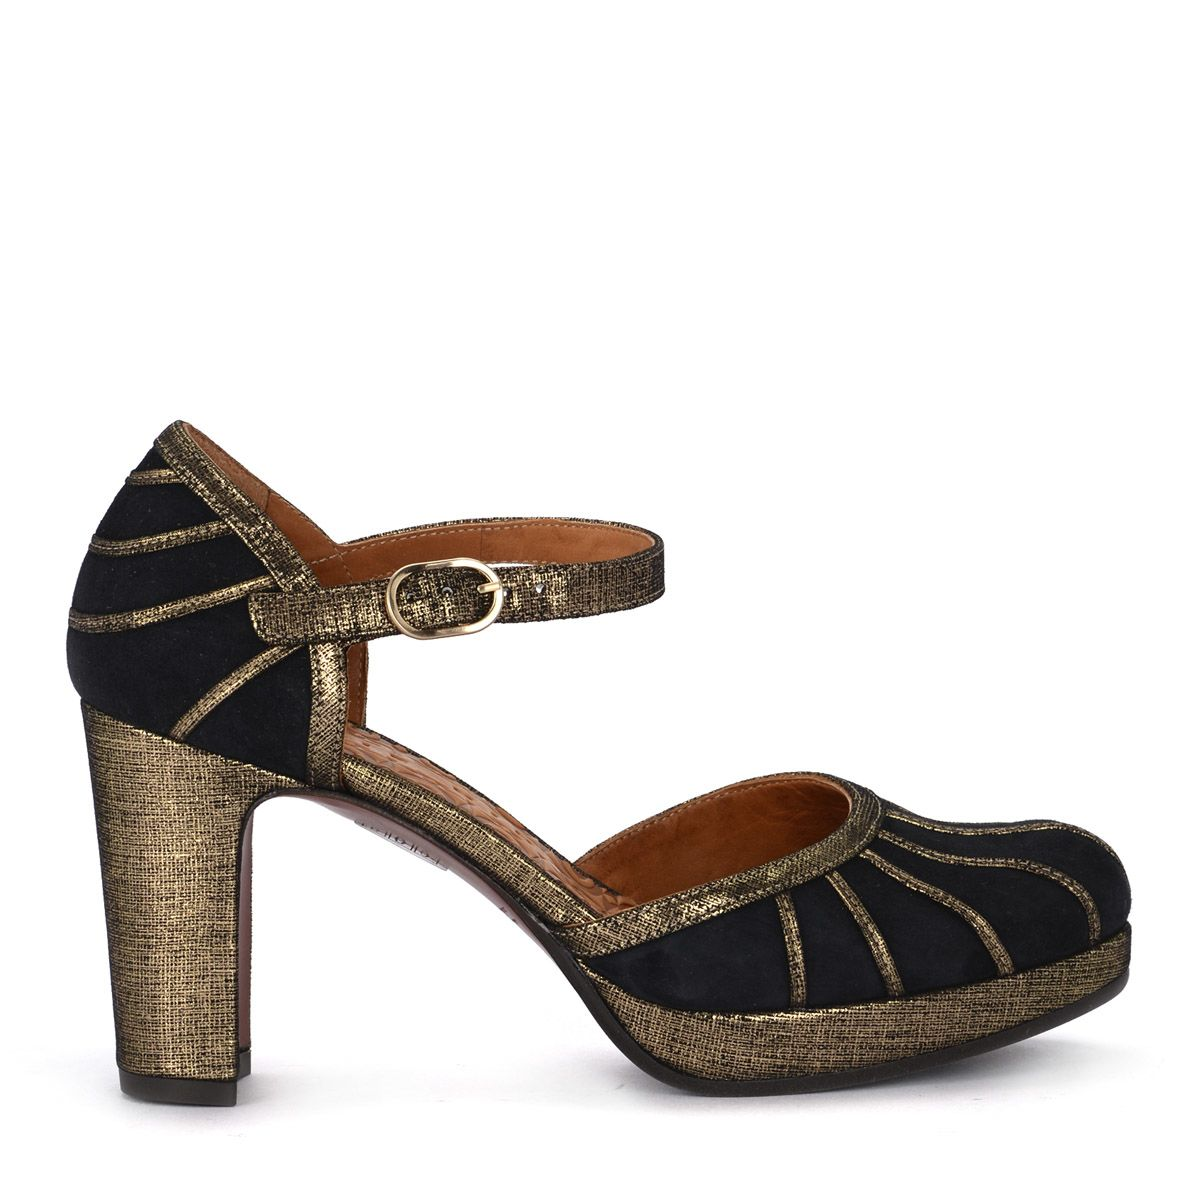 eae7d37f256b Chie Mihara Chie Mihara Capin Dark Blue And Gold Suede Shoes - Black ...